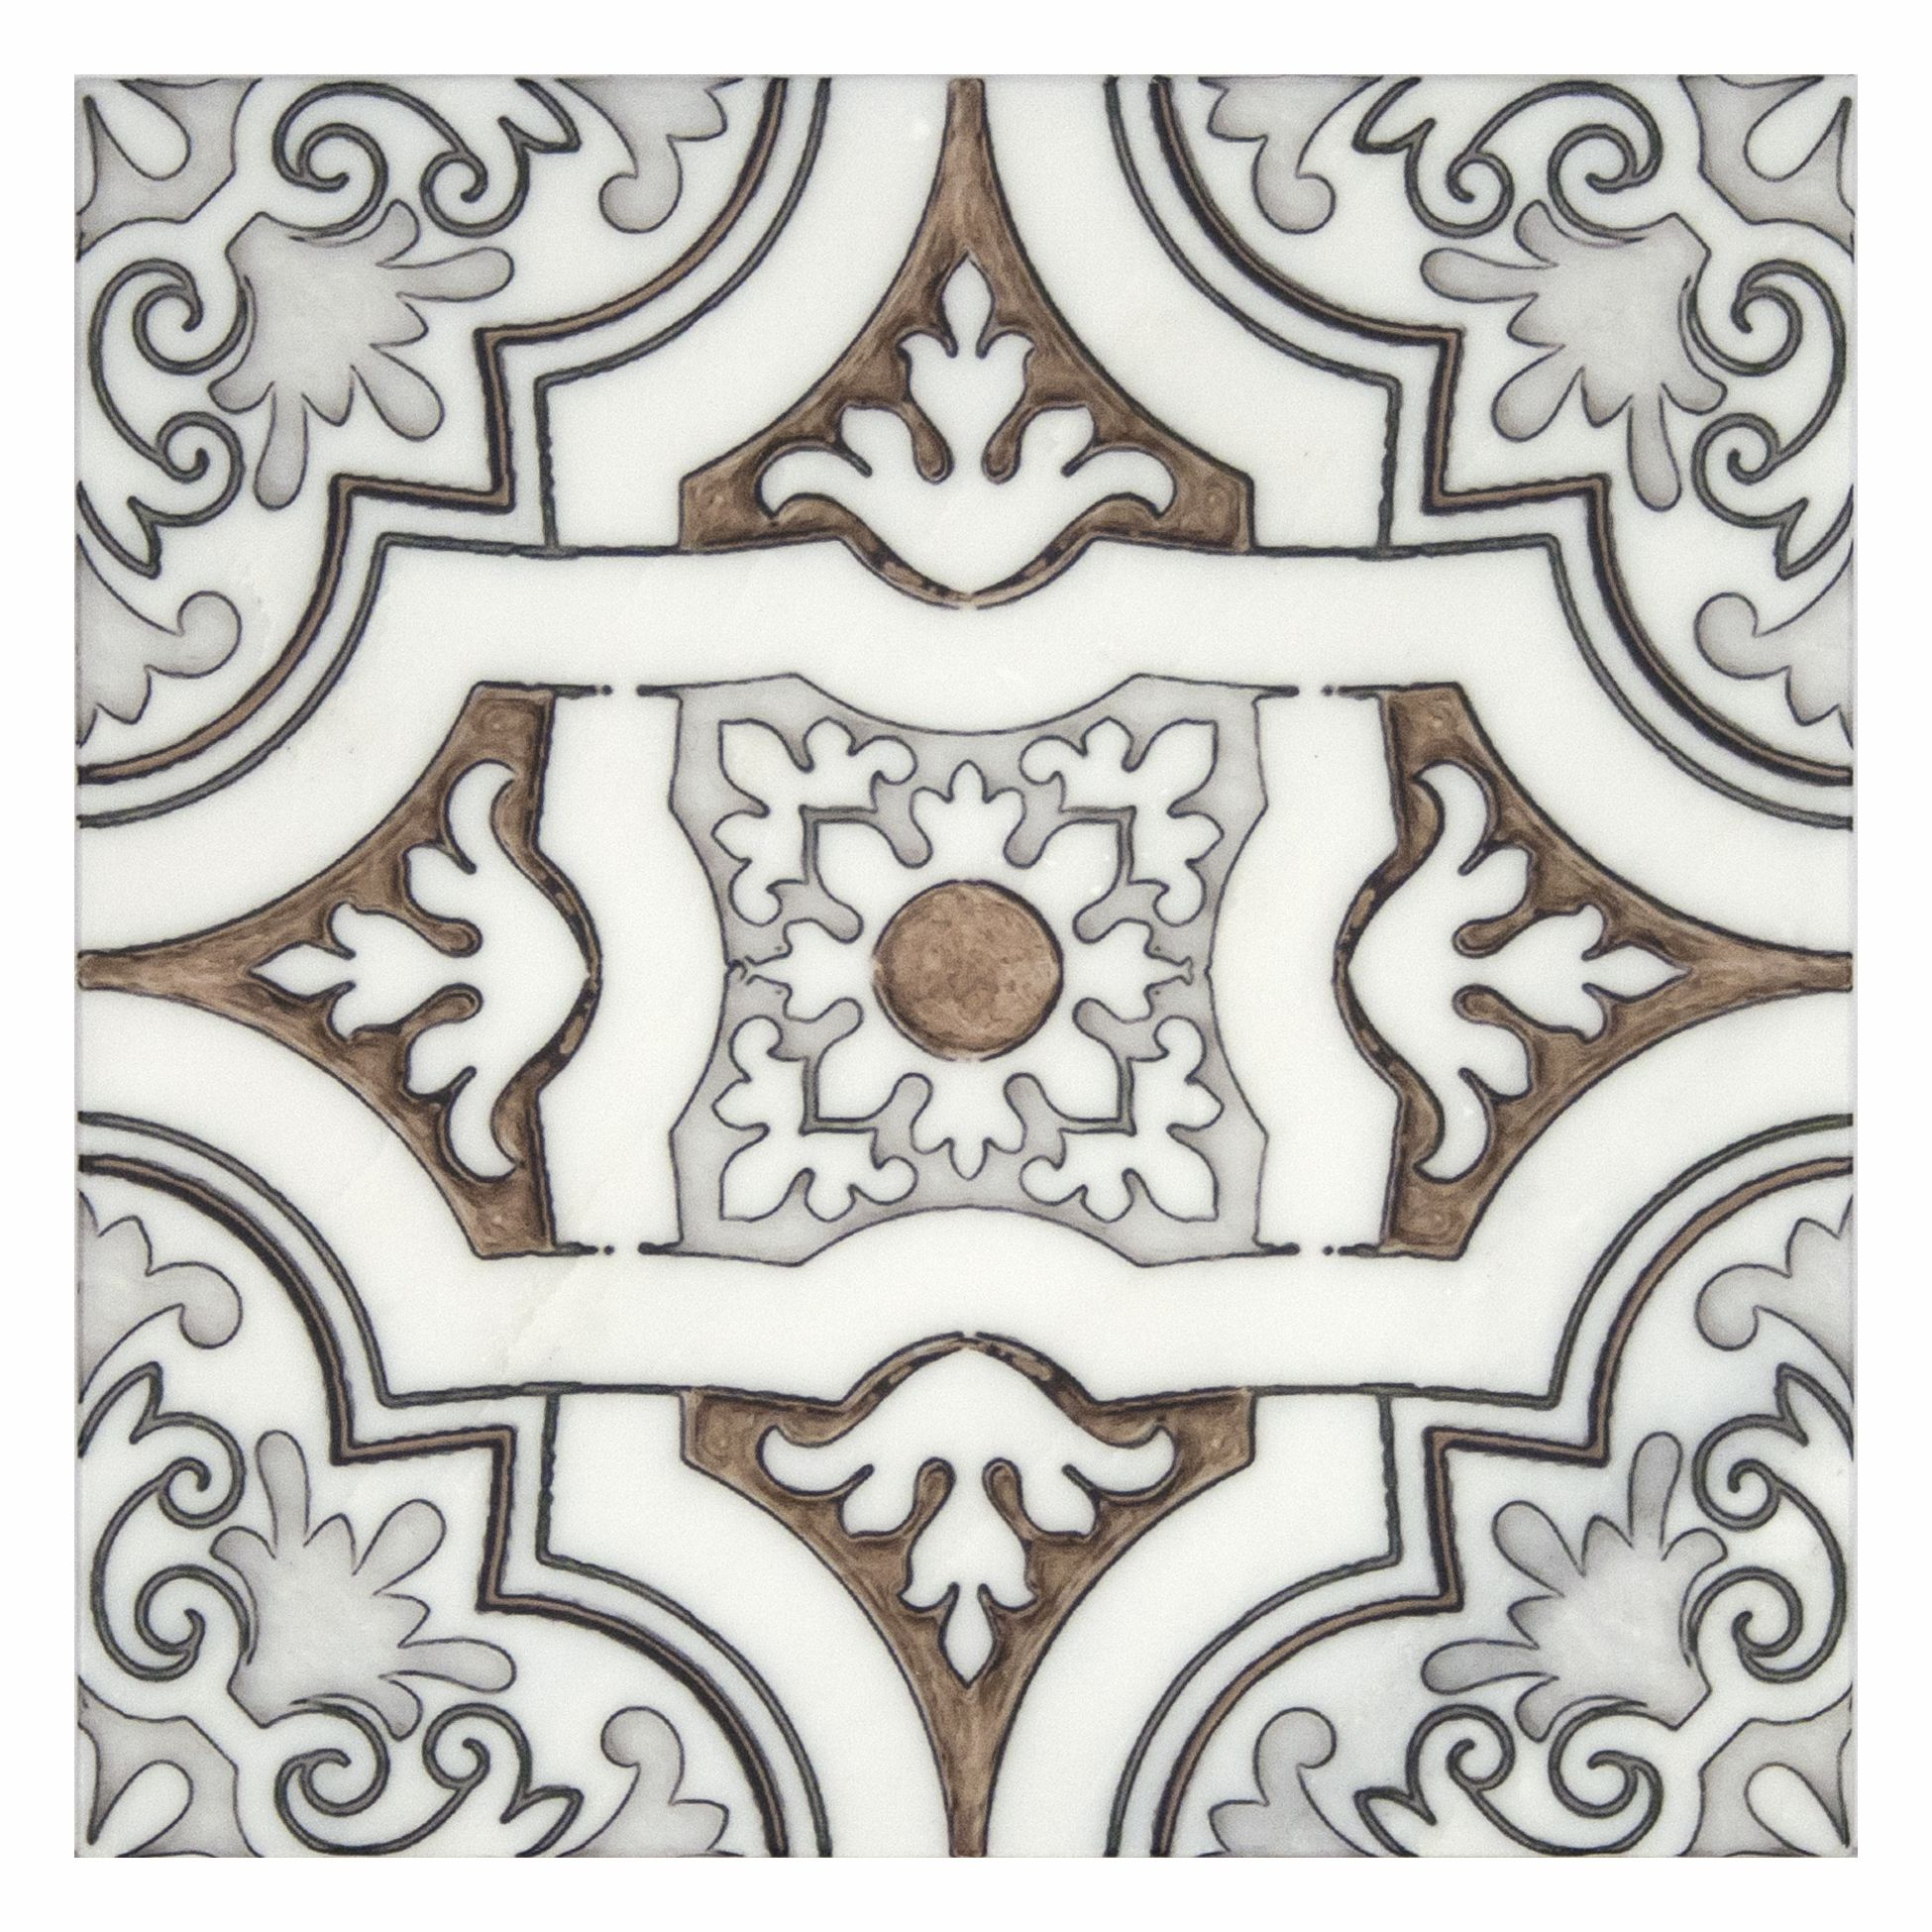 12X12 Decorative Tiles Glamorous Art Deco Tiles Unique Decorative Accents 6X6 12X12 Carrara Marble Decorating Design